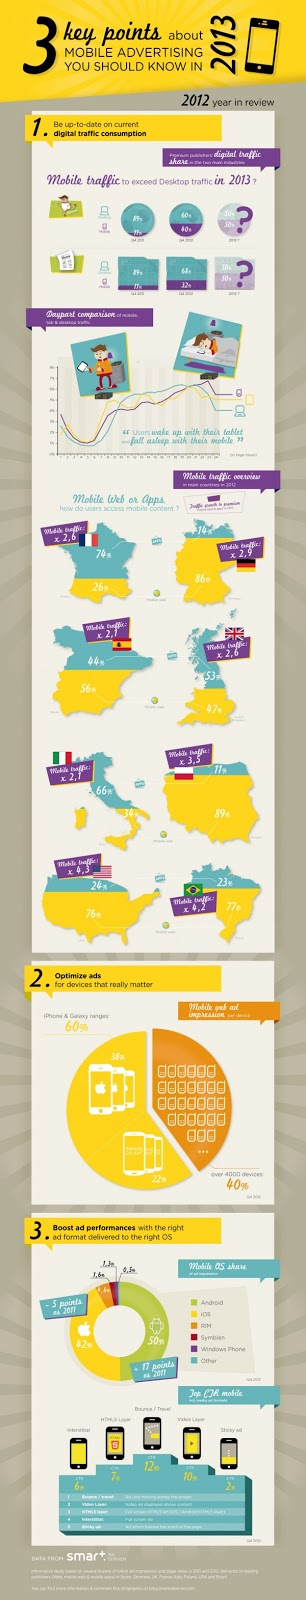 Mobile Traffic and Advertising In 2013: infographic